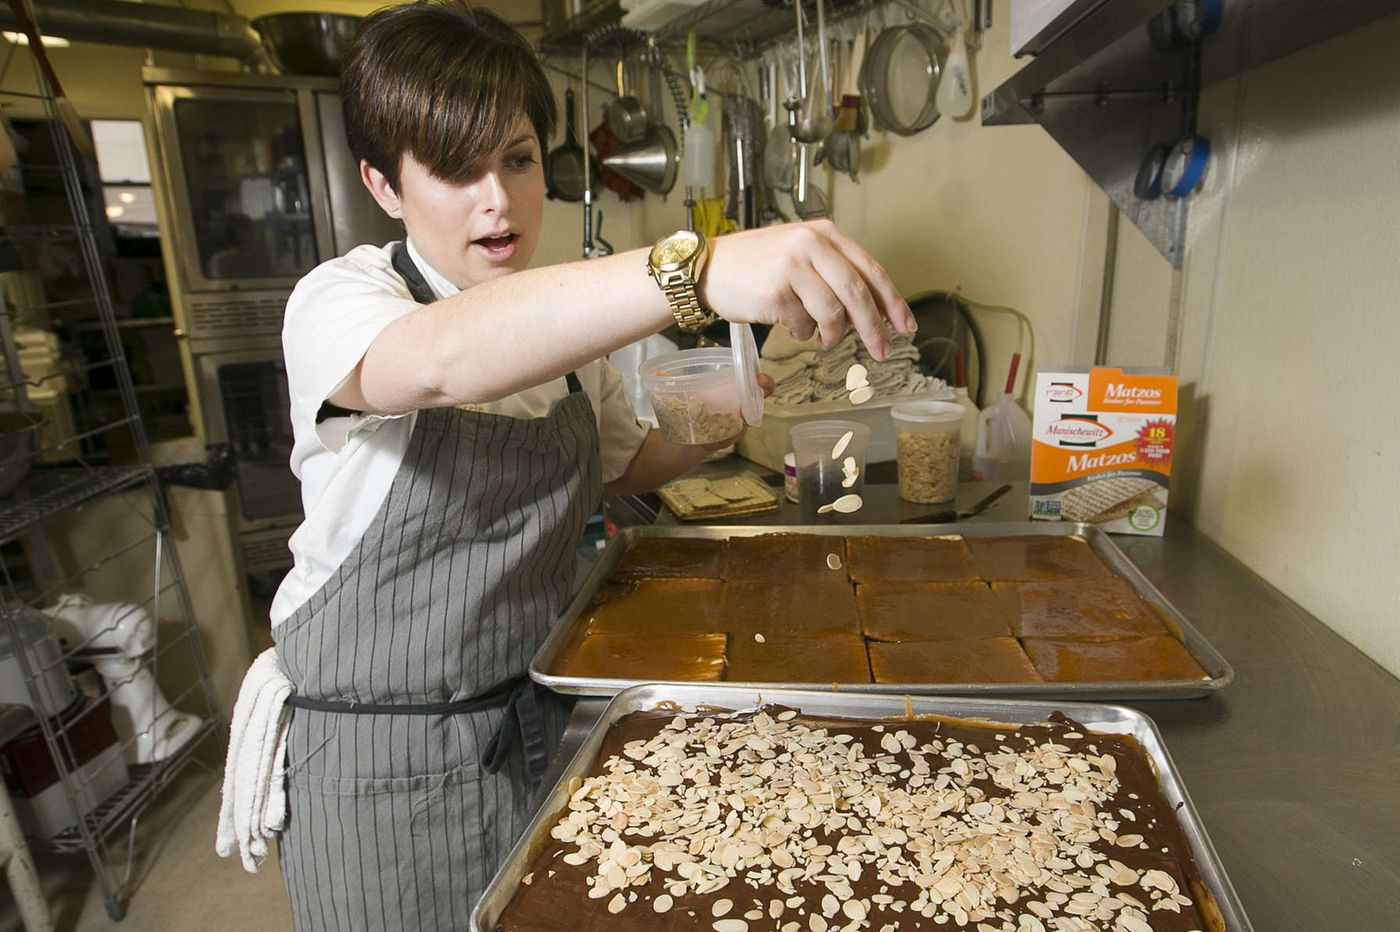 Seven Philly Chefs Tapped To Cook At James Beard Media Awards Gala